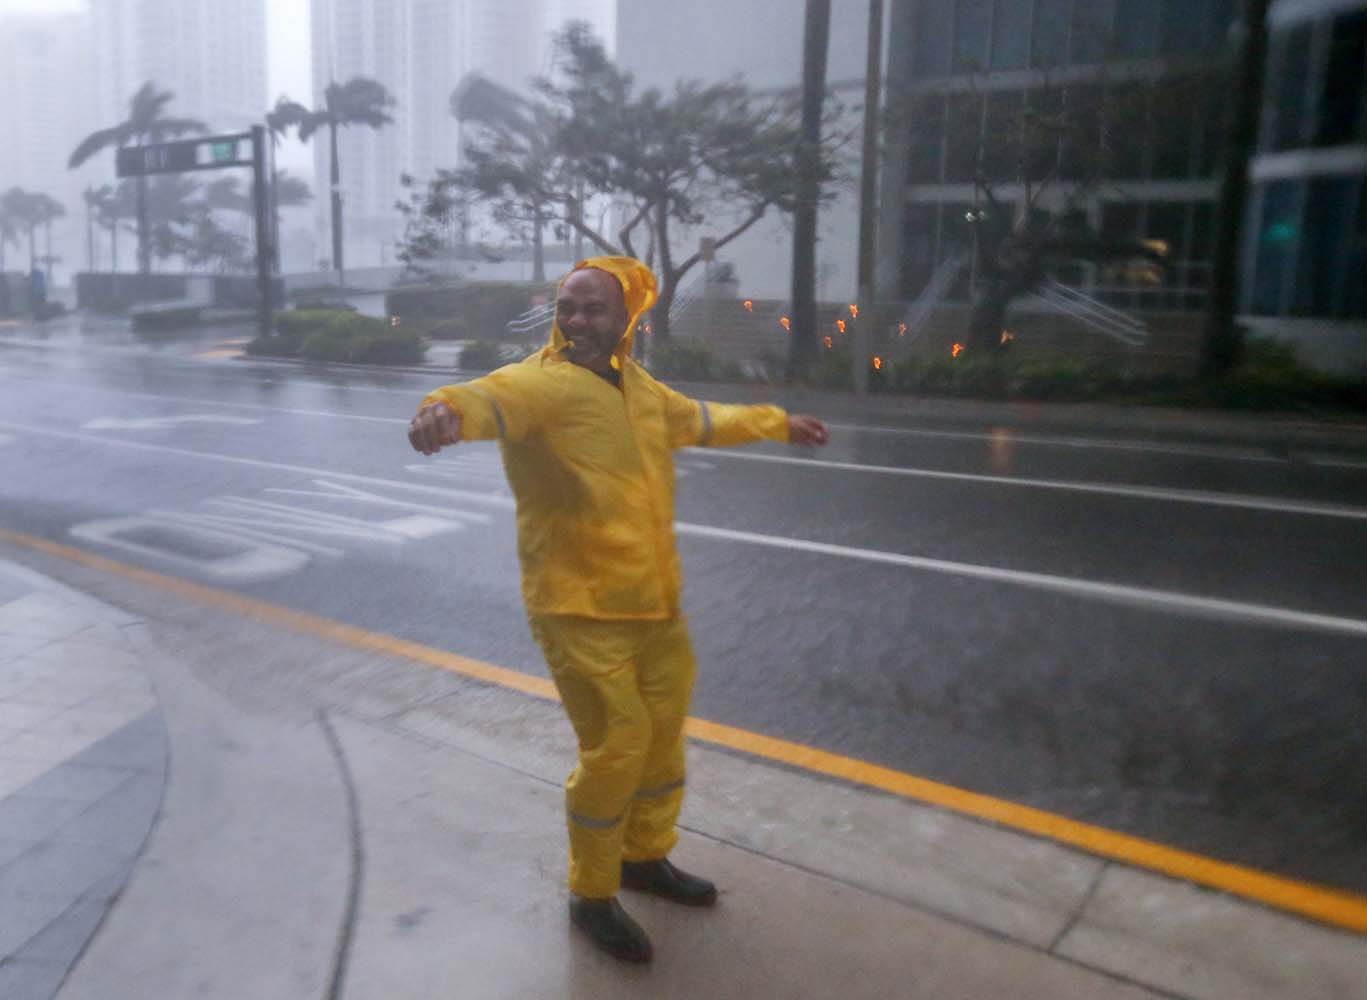 ELX01. Miami (United States), 10/09/2017.- A man braves the elements as the full effects of Hurricane Irma strike in Miami, Florida, USA, 10 September 2017. Many areas are under mandatory evacuation orders as Irma approaches Florida. The National Hurricane Center has rated Irma as a Category 4 storm as the eye crosses the lower Florida Keys. (Estados Unidos) EFE/EPA/ERIK S. LESSER